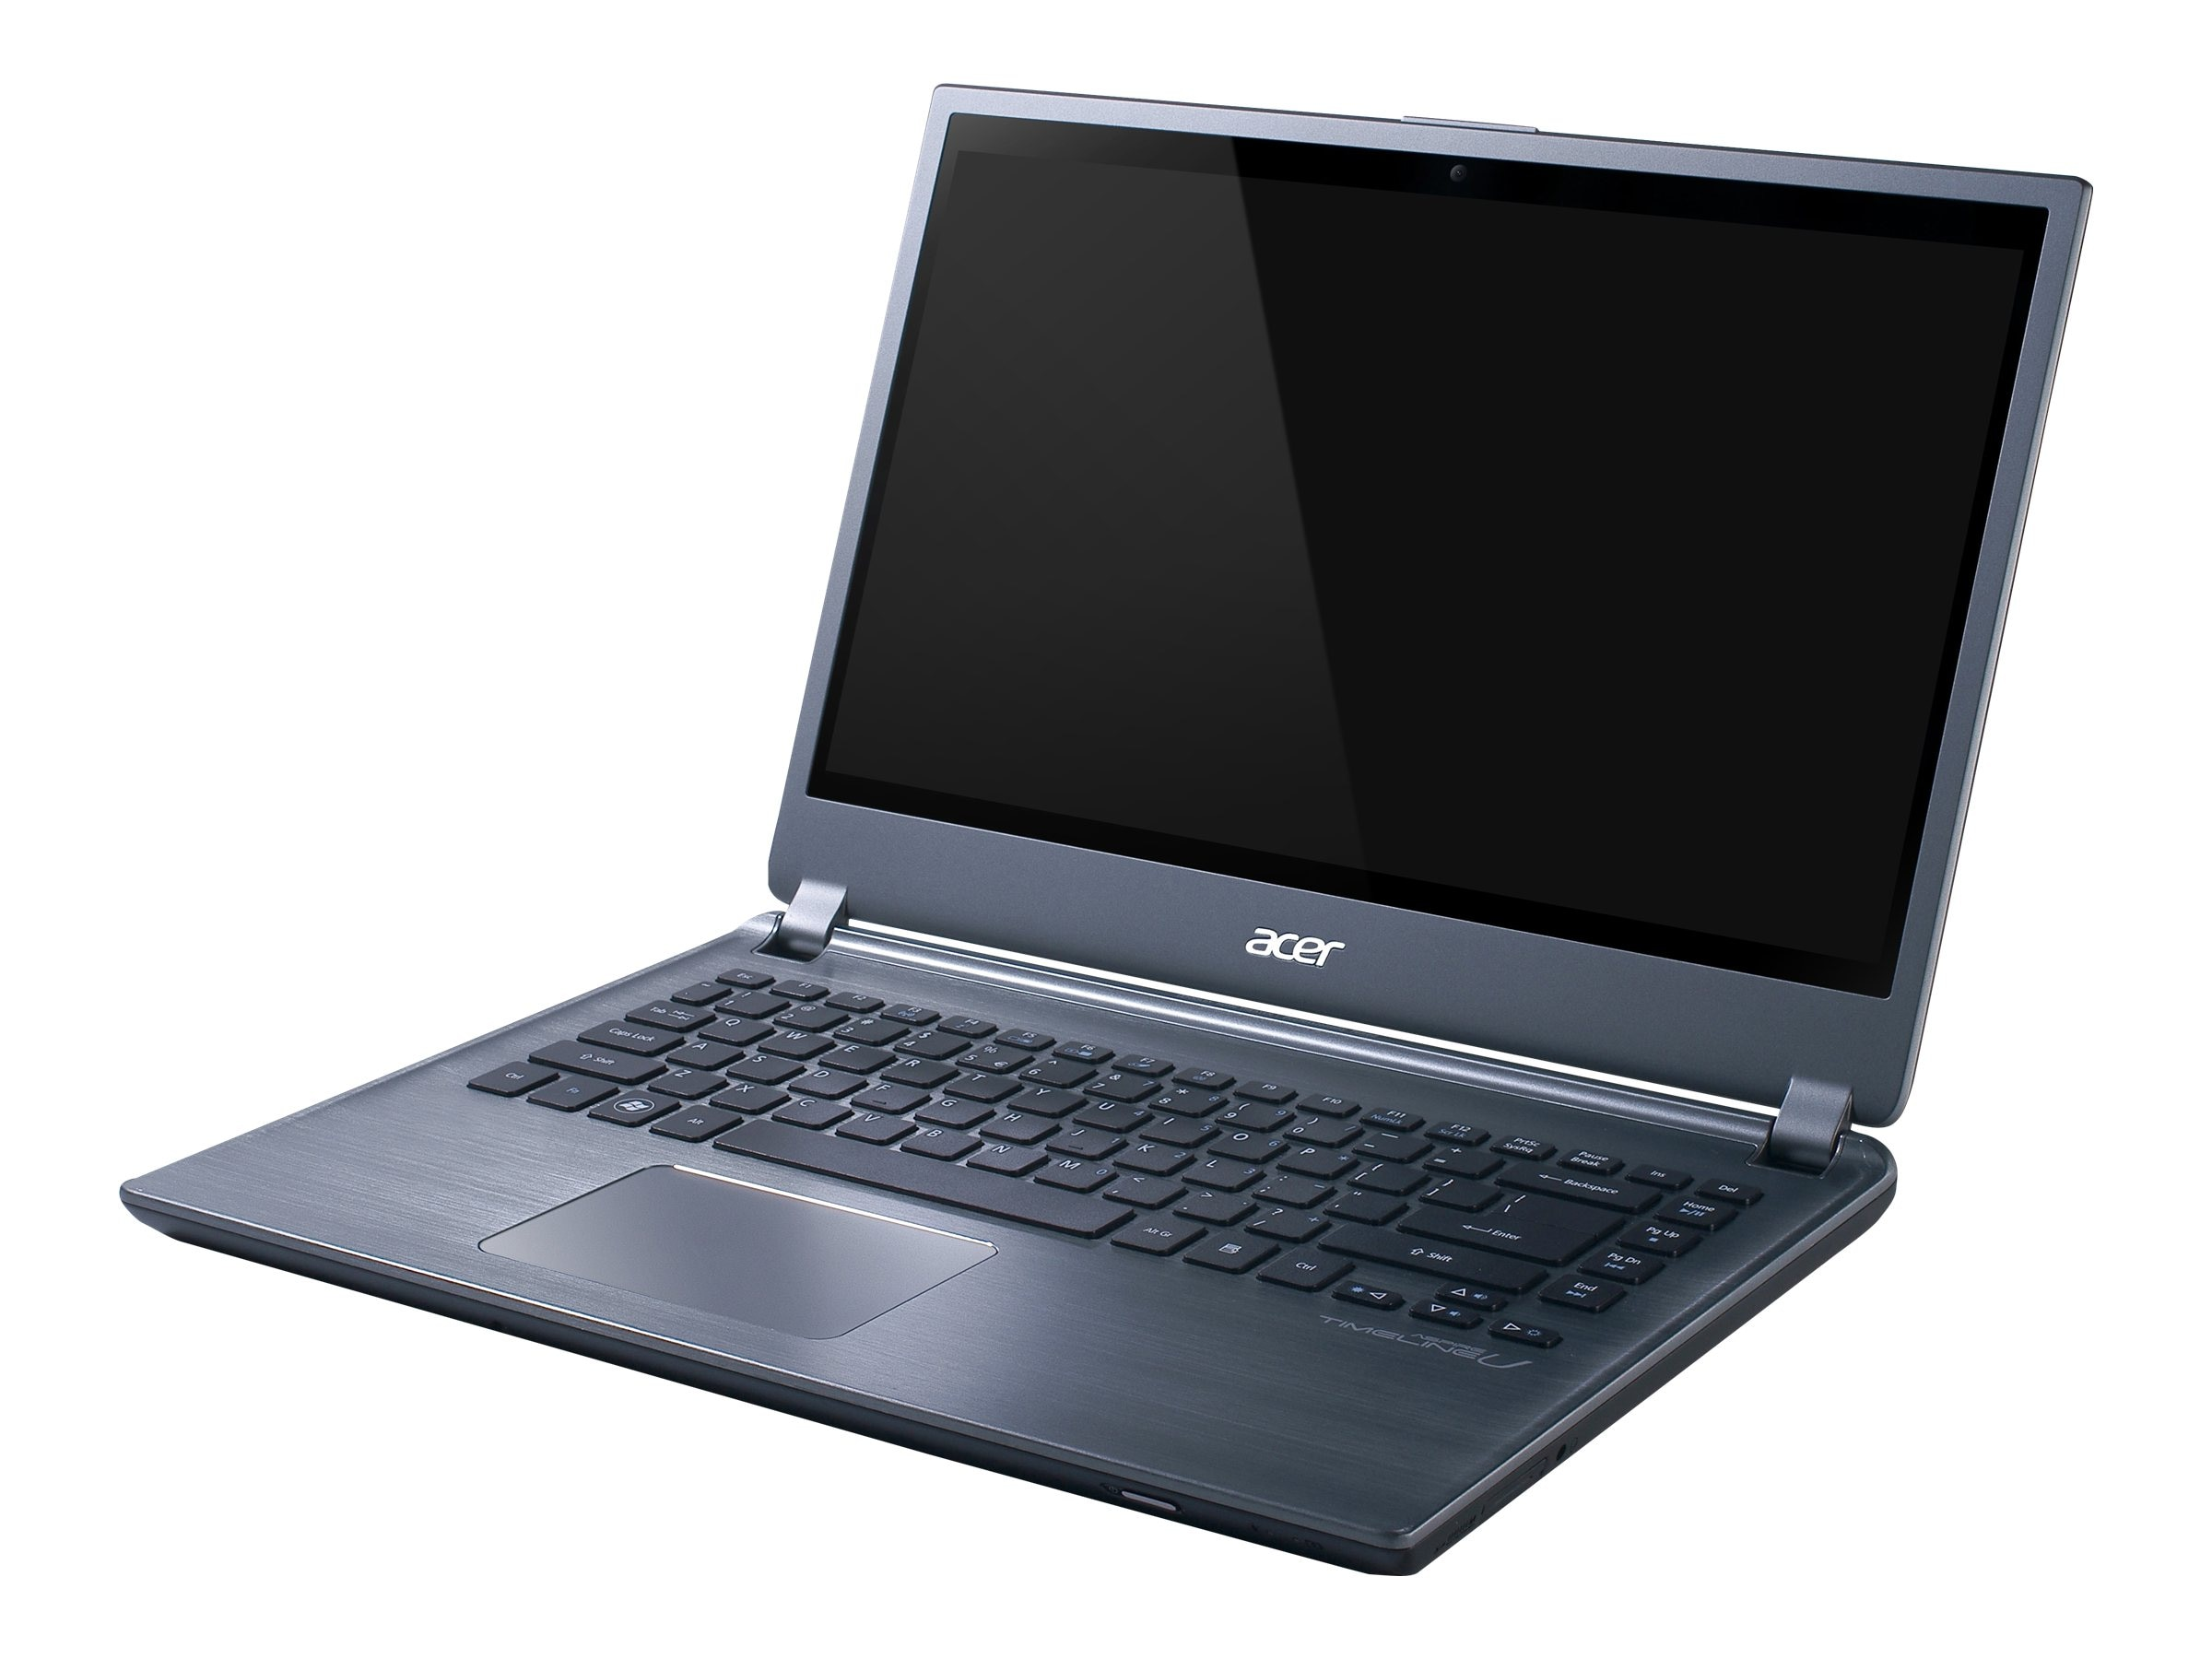 Acer Aspire M5-481PT-6819 1.8GHz Core i5 14in display, NX.M3WAA.007, 16582797, Notebooks